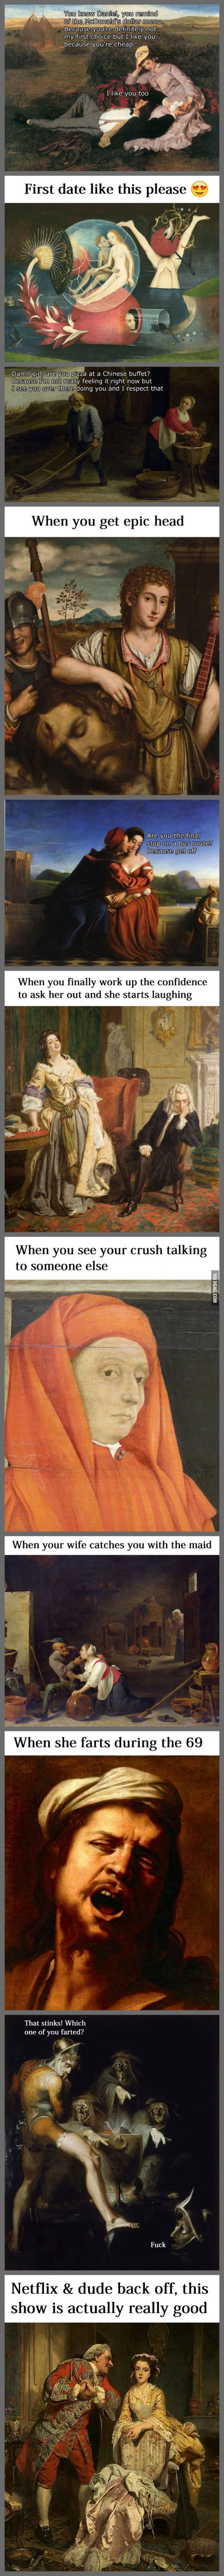 Classical Art Memes Latest (Part-22)